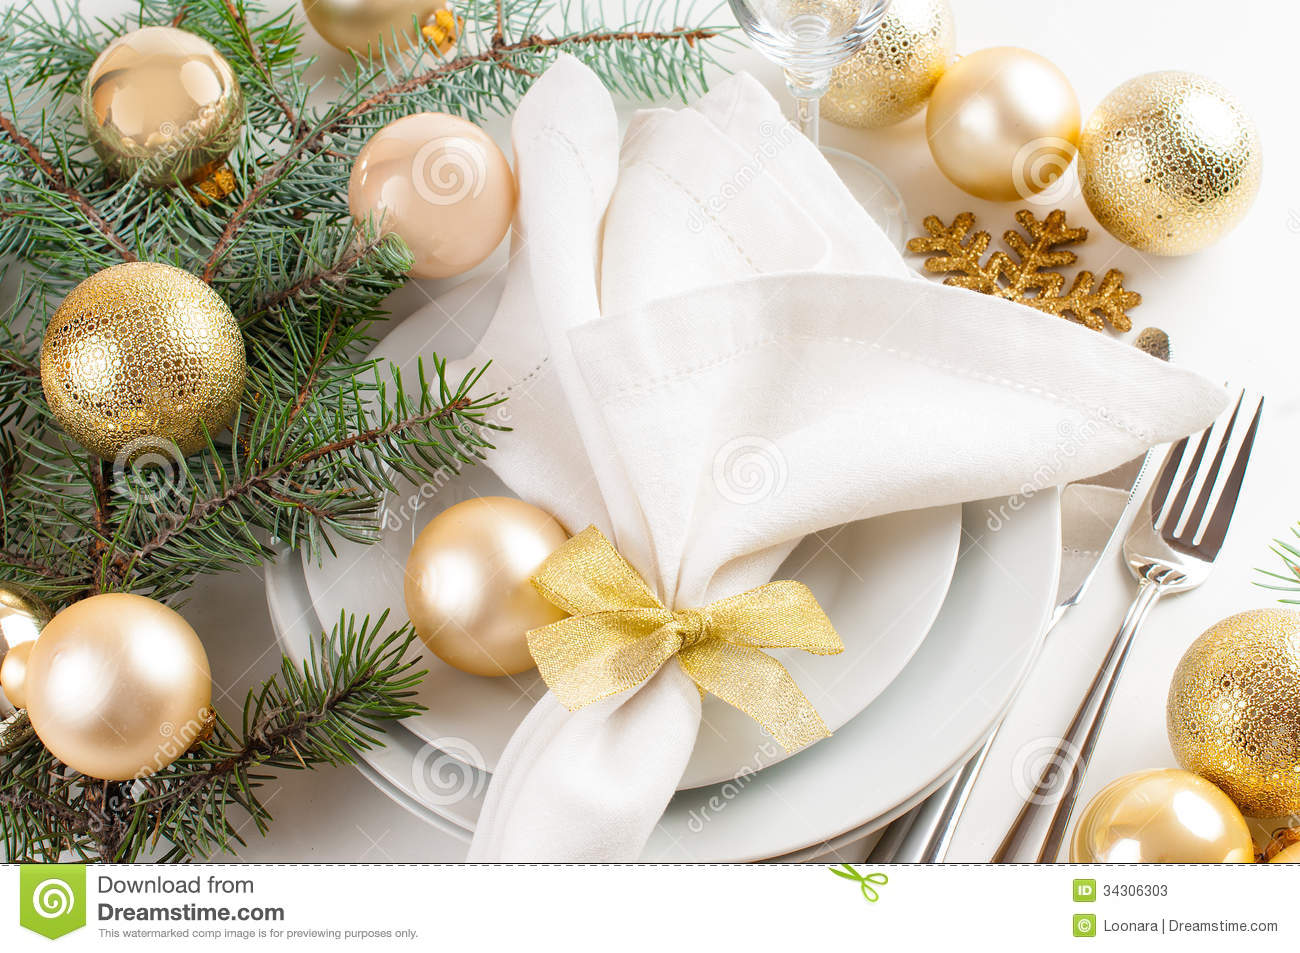 Christmas table decorations gold - Christmas Table Setting In Gold Tones Stock Photos